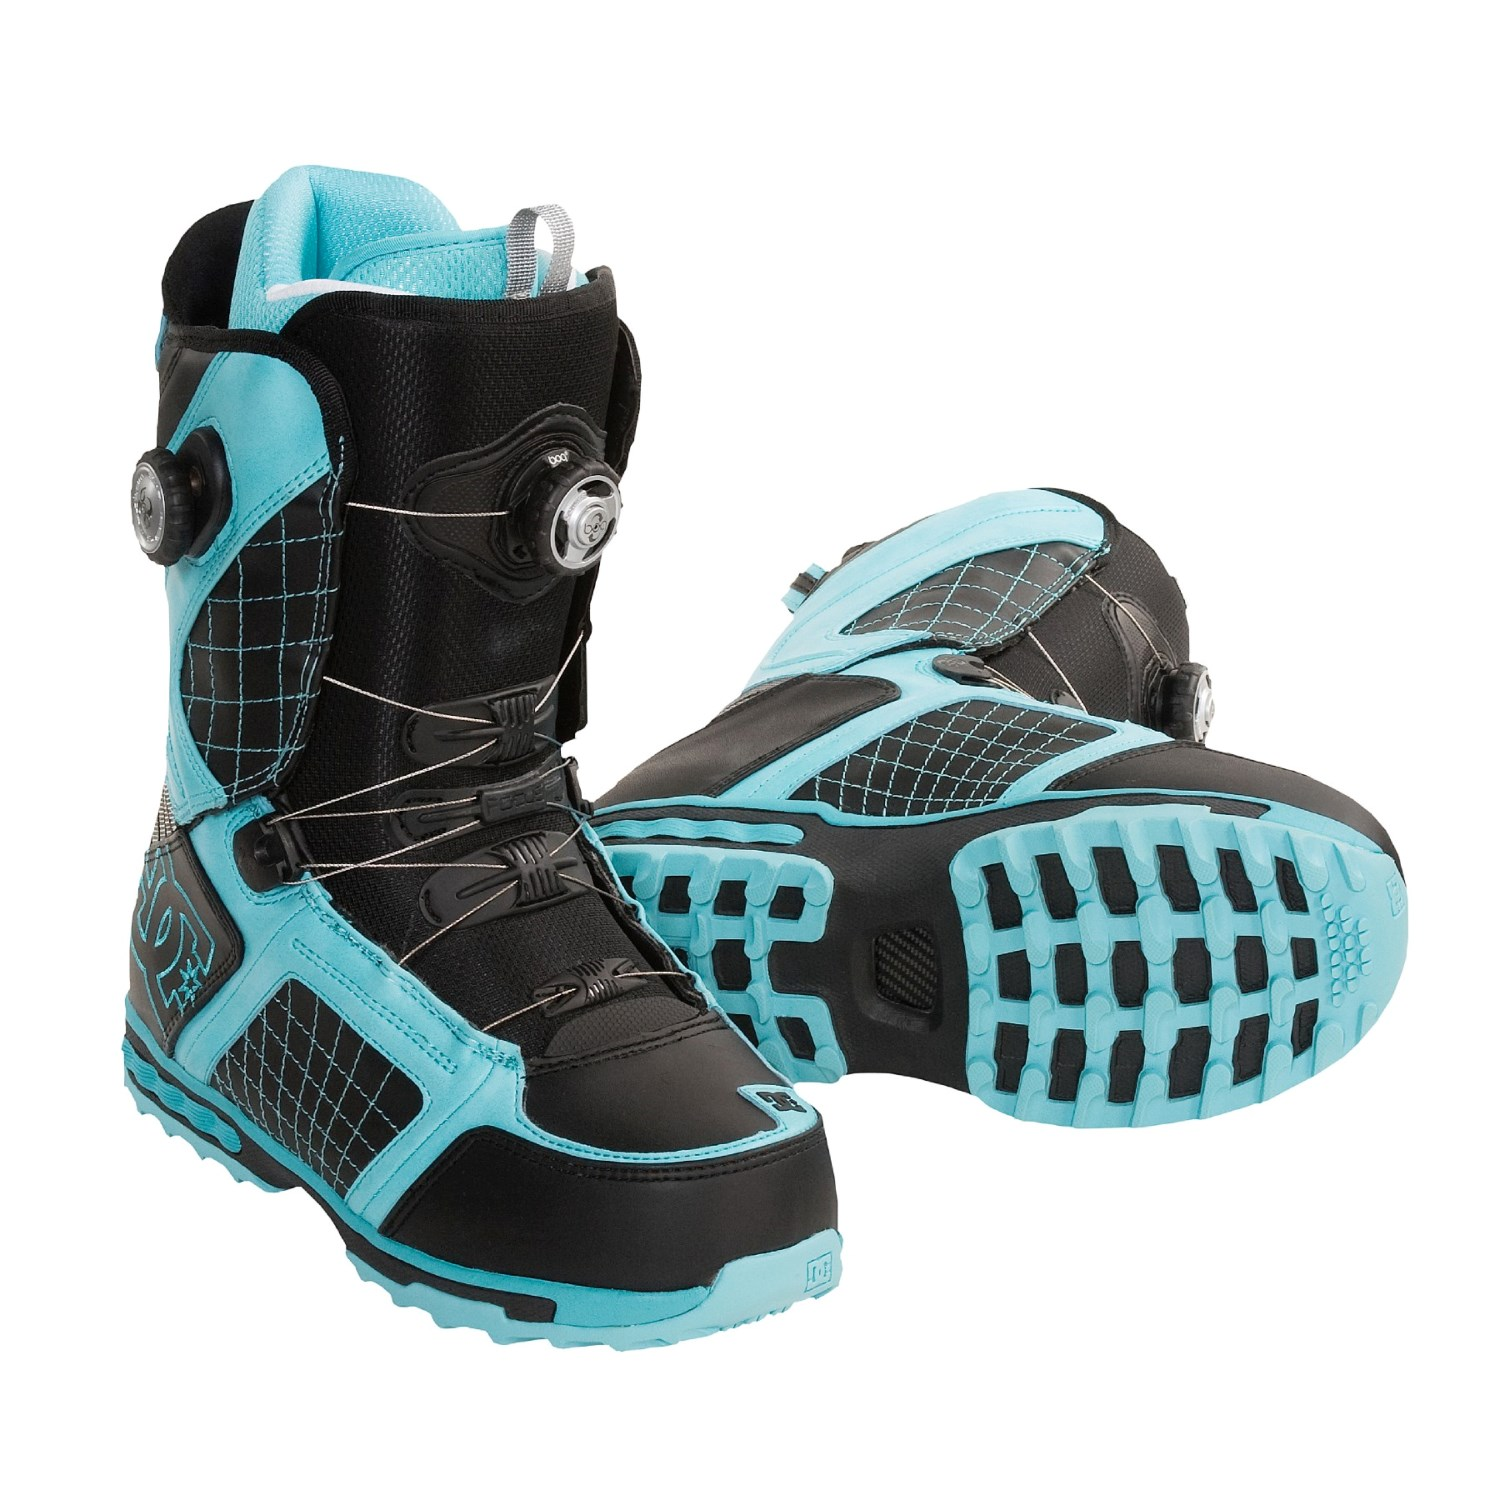 dc shoes judge boa snowboard boots for men 1697d save 56. Black Bedroom Furniture Sets. Home Design Ideas